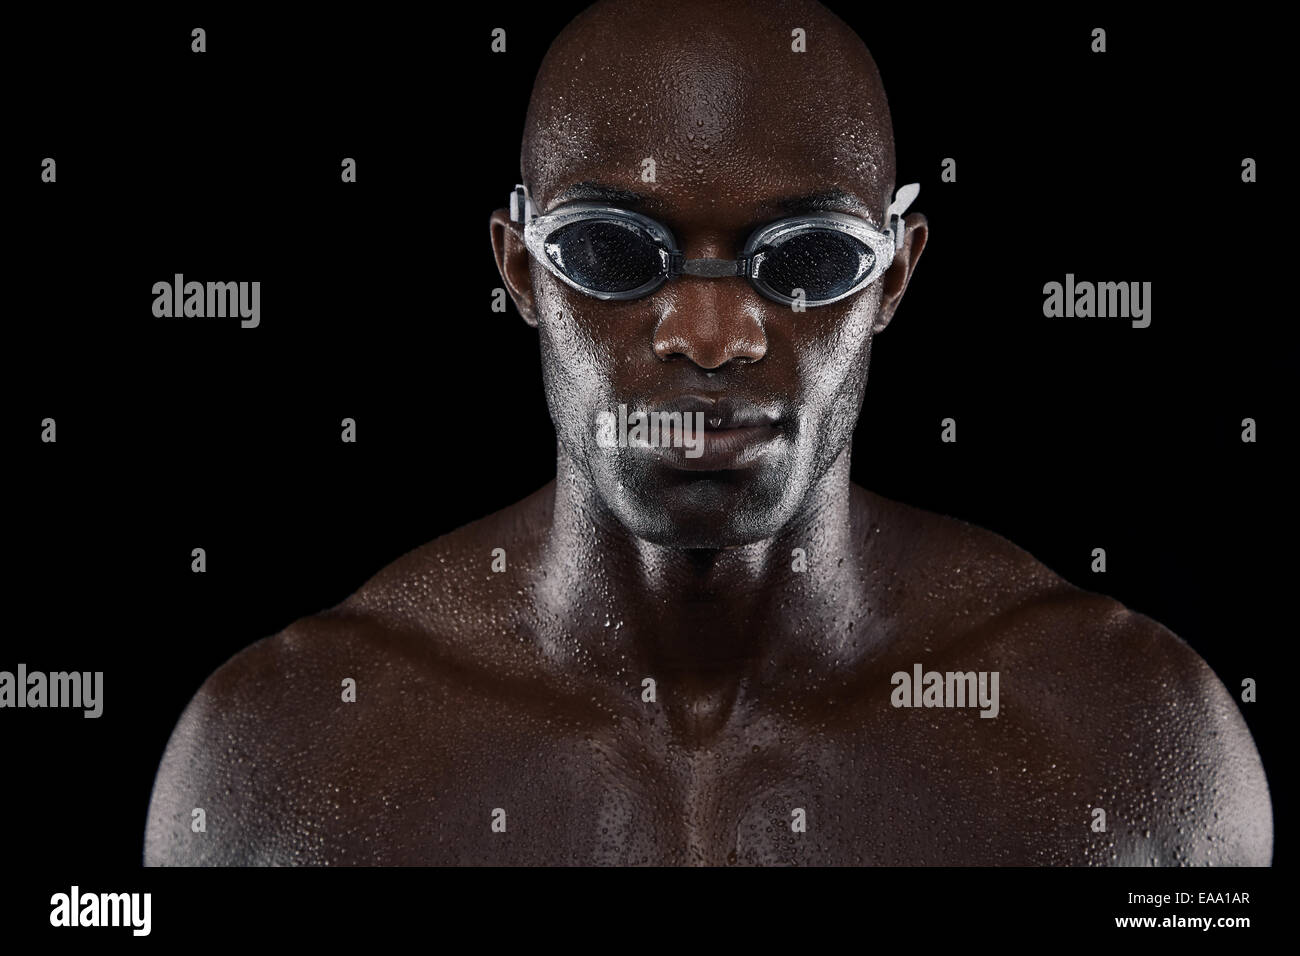 Portrait of confident male swimmer looking at camera against black background. Close-up image of muscular young - Stock Image